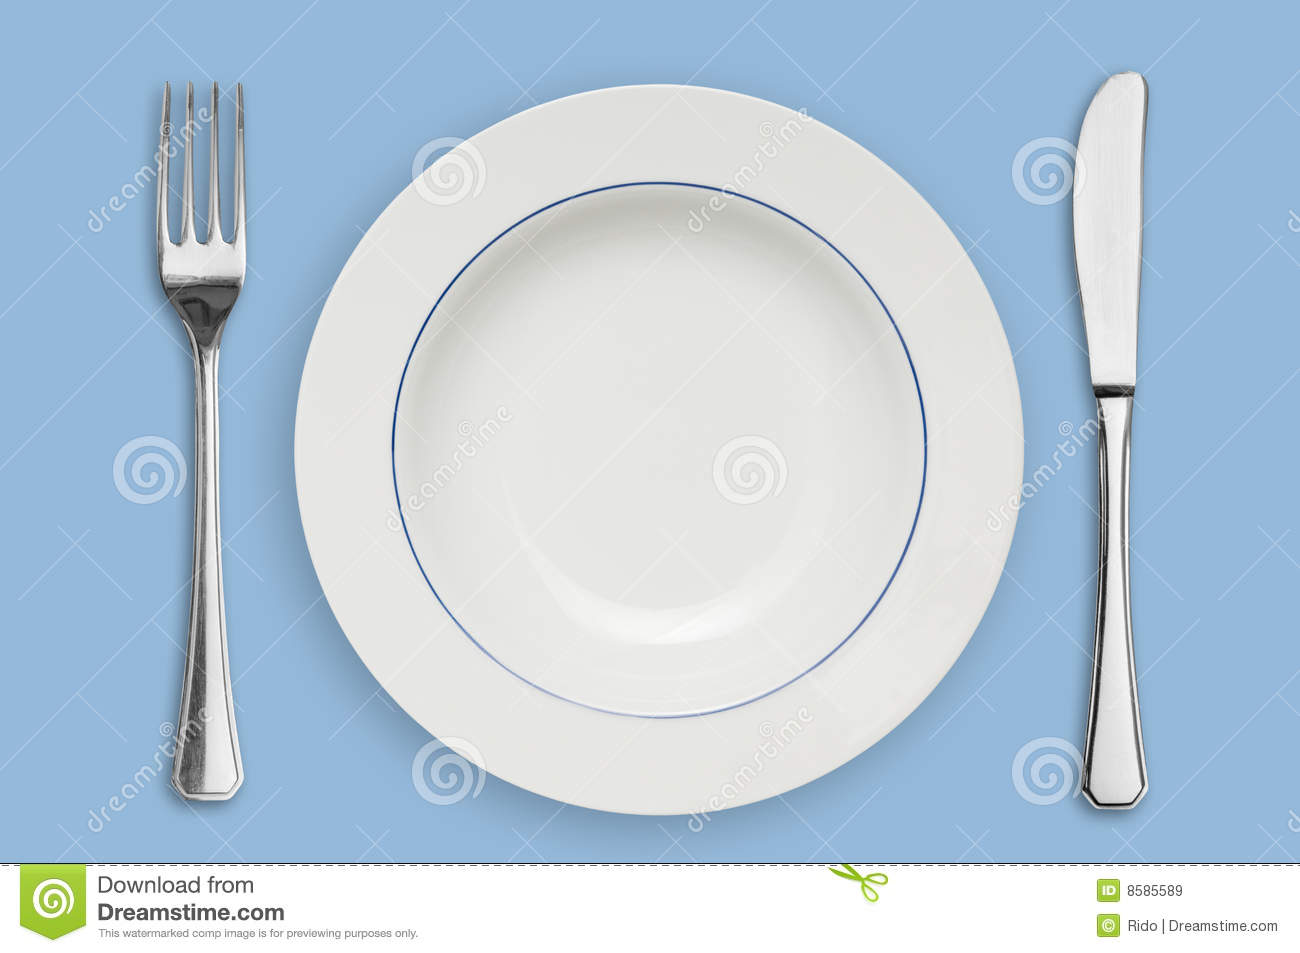 Plate And Silverware Royalty Free Stock Images Image  : plate silverware 8585589 from dreamstime.com size 1300 x 953 jpeg 77kB